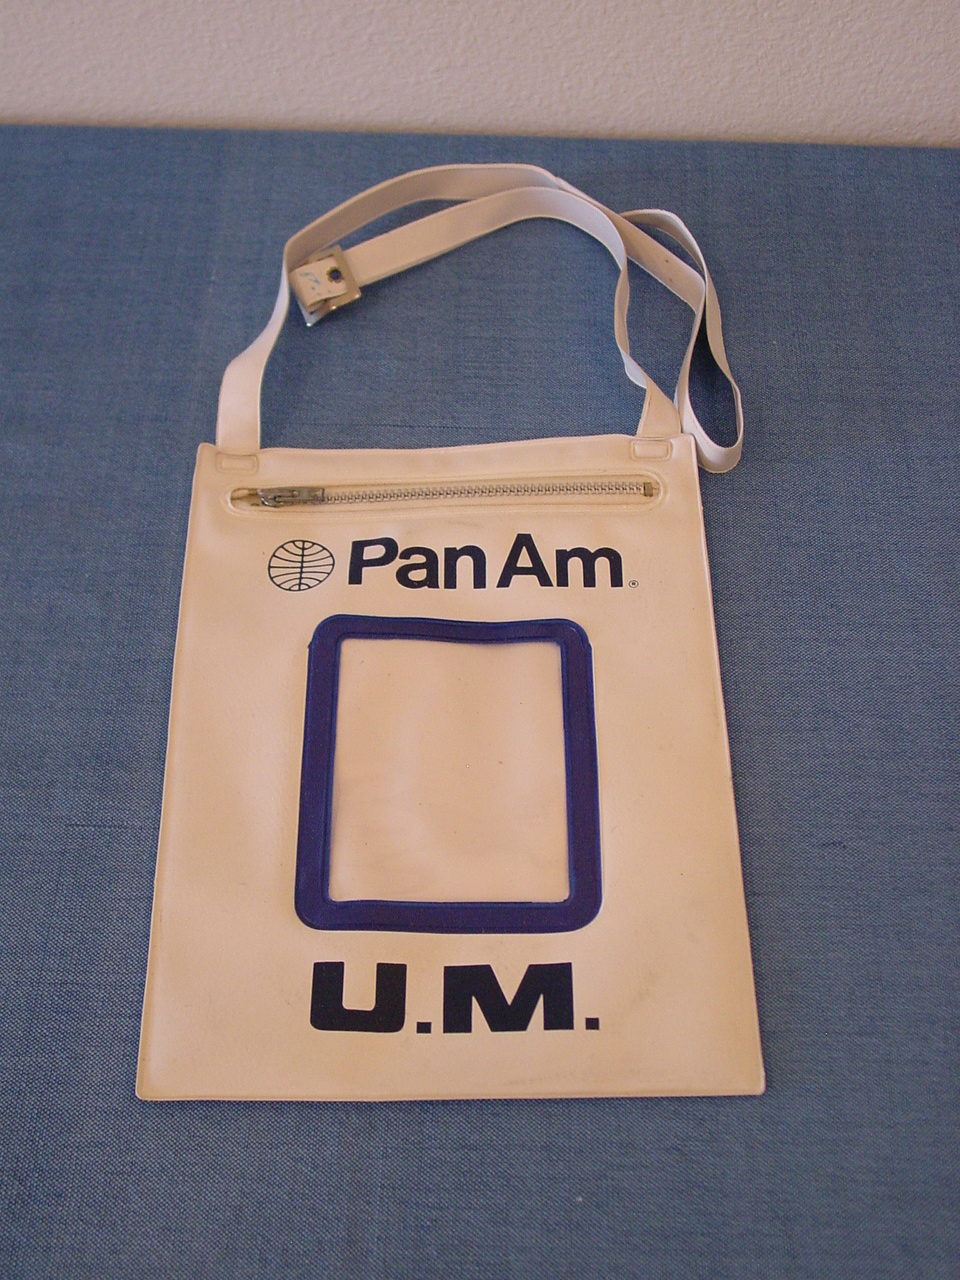 For young unaccompanied minors Pan Am had a pouch for them to wear so they could be easily identified by flight and ground crew.  This sameple in the Helvetica style dates from the early 1970s.